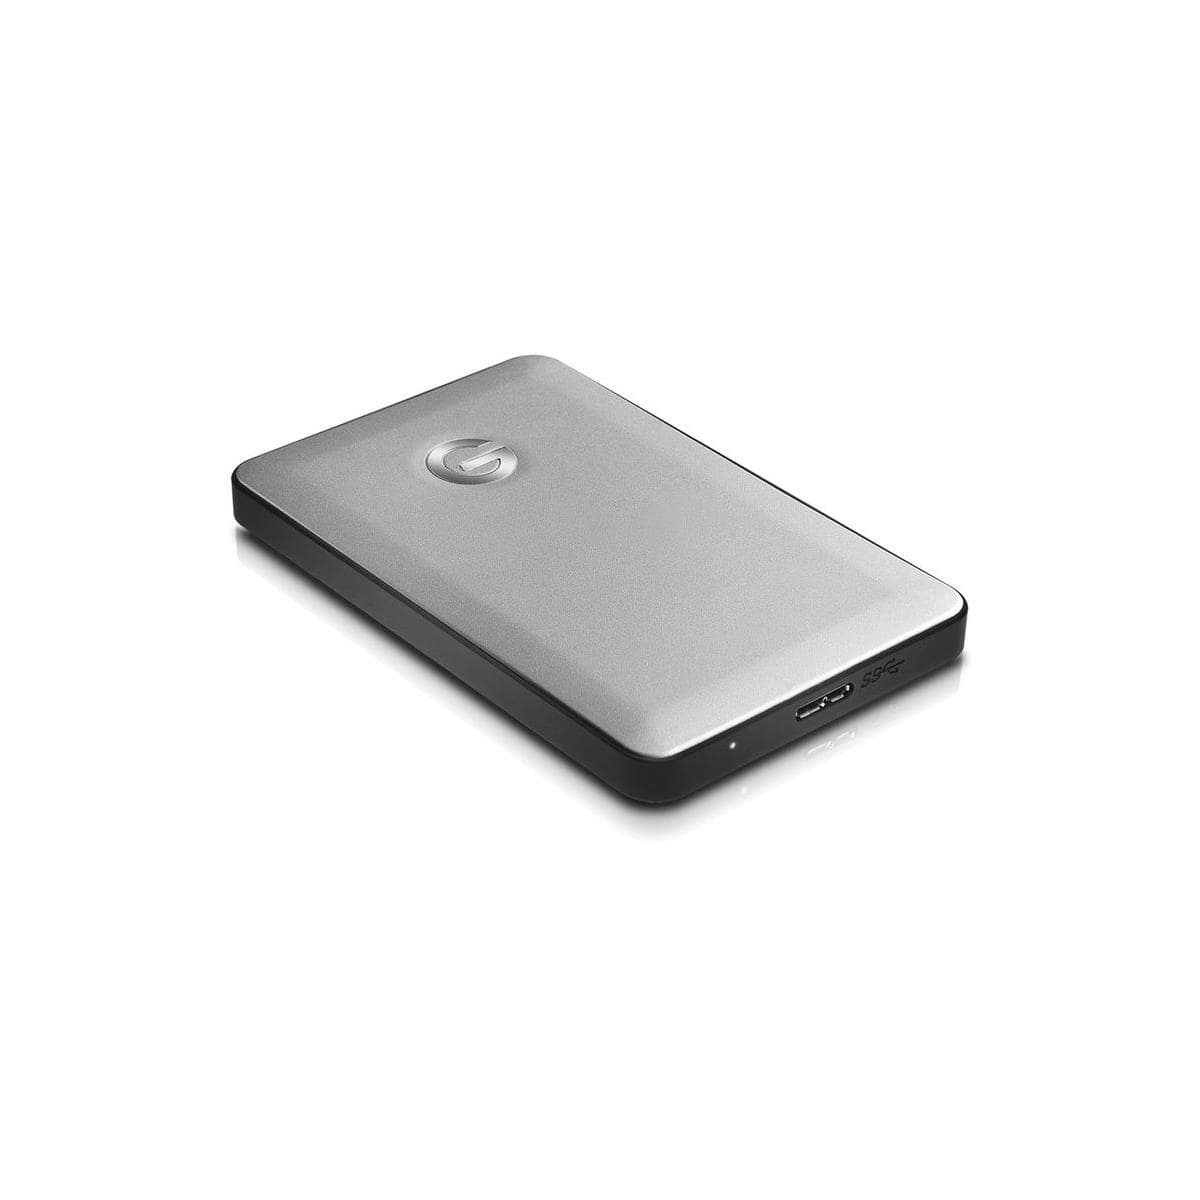 1TB G-Technology G-Drive Portable Hard Drive $50 + free shipping